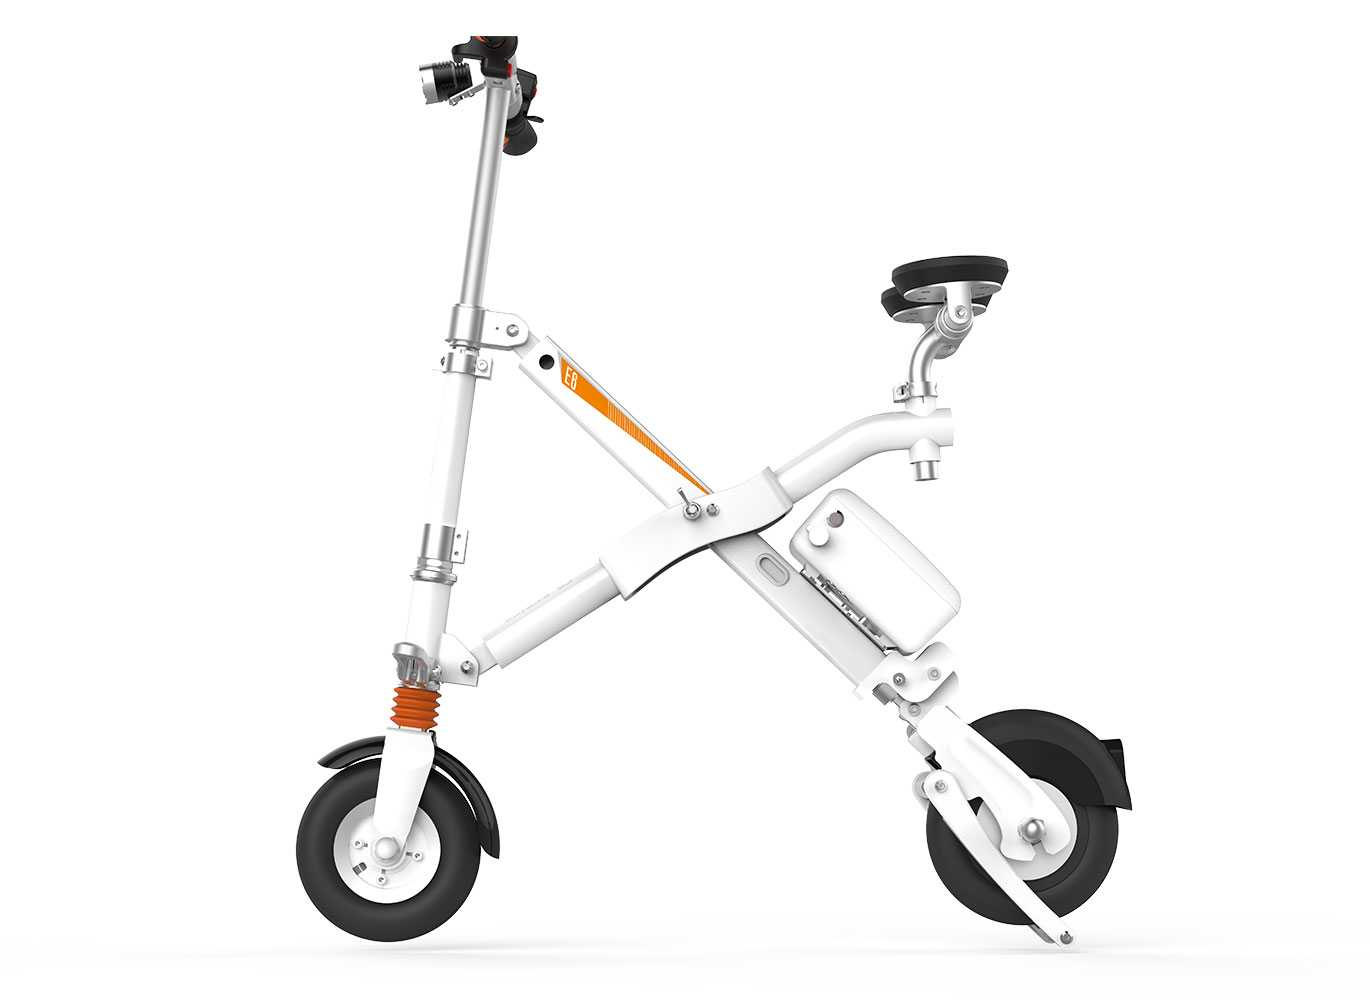 airwheel-e6-3